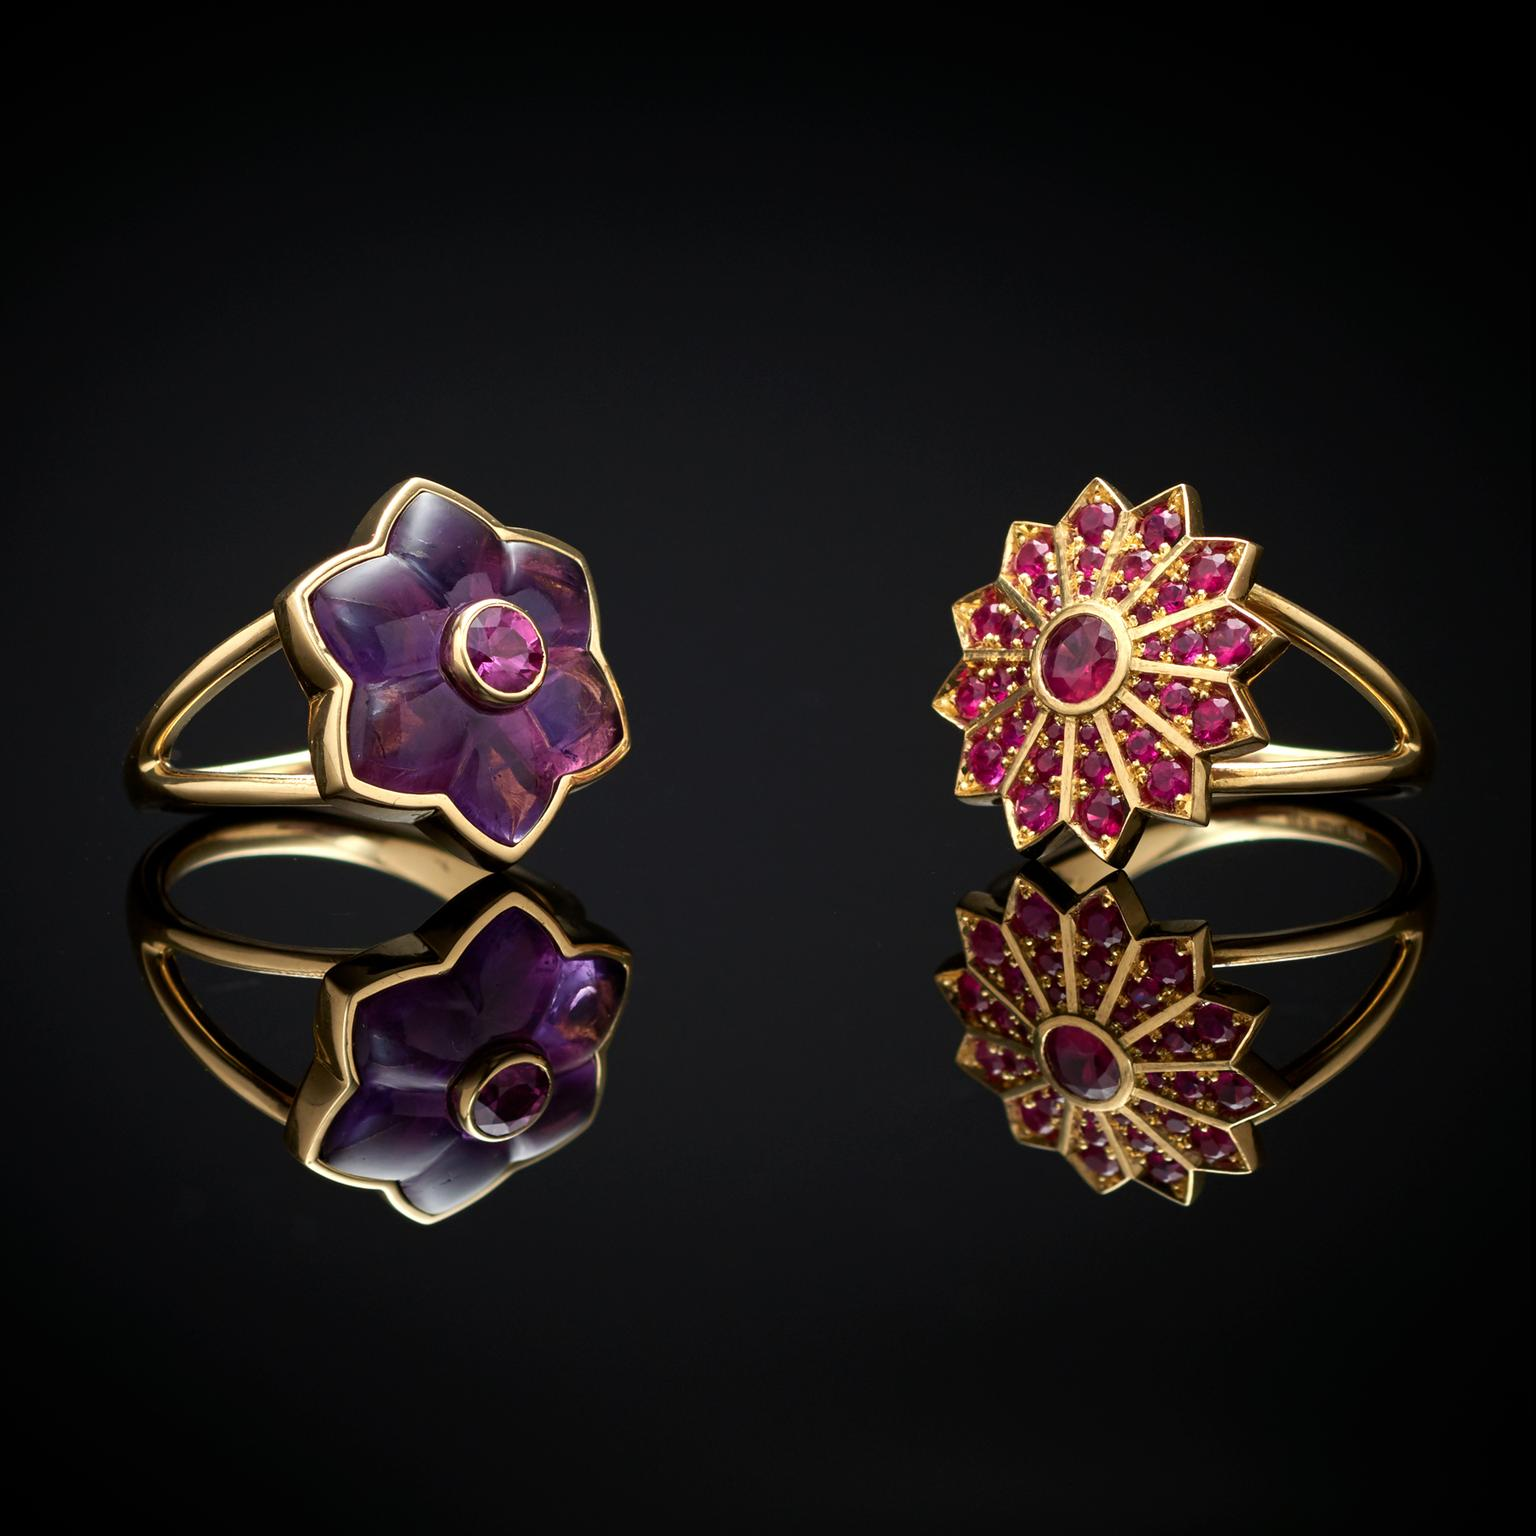 Bloomin' Jewels at Contemporary Applied Arts